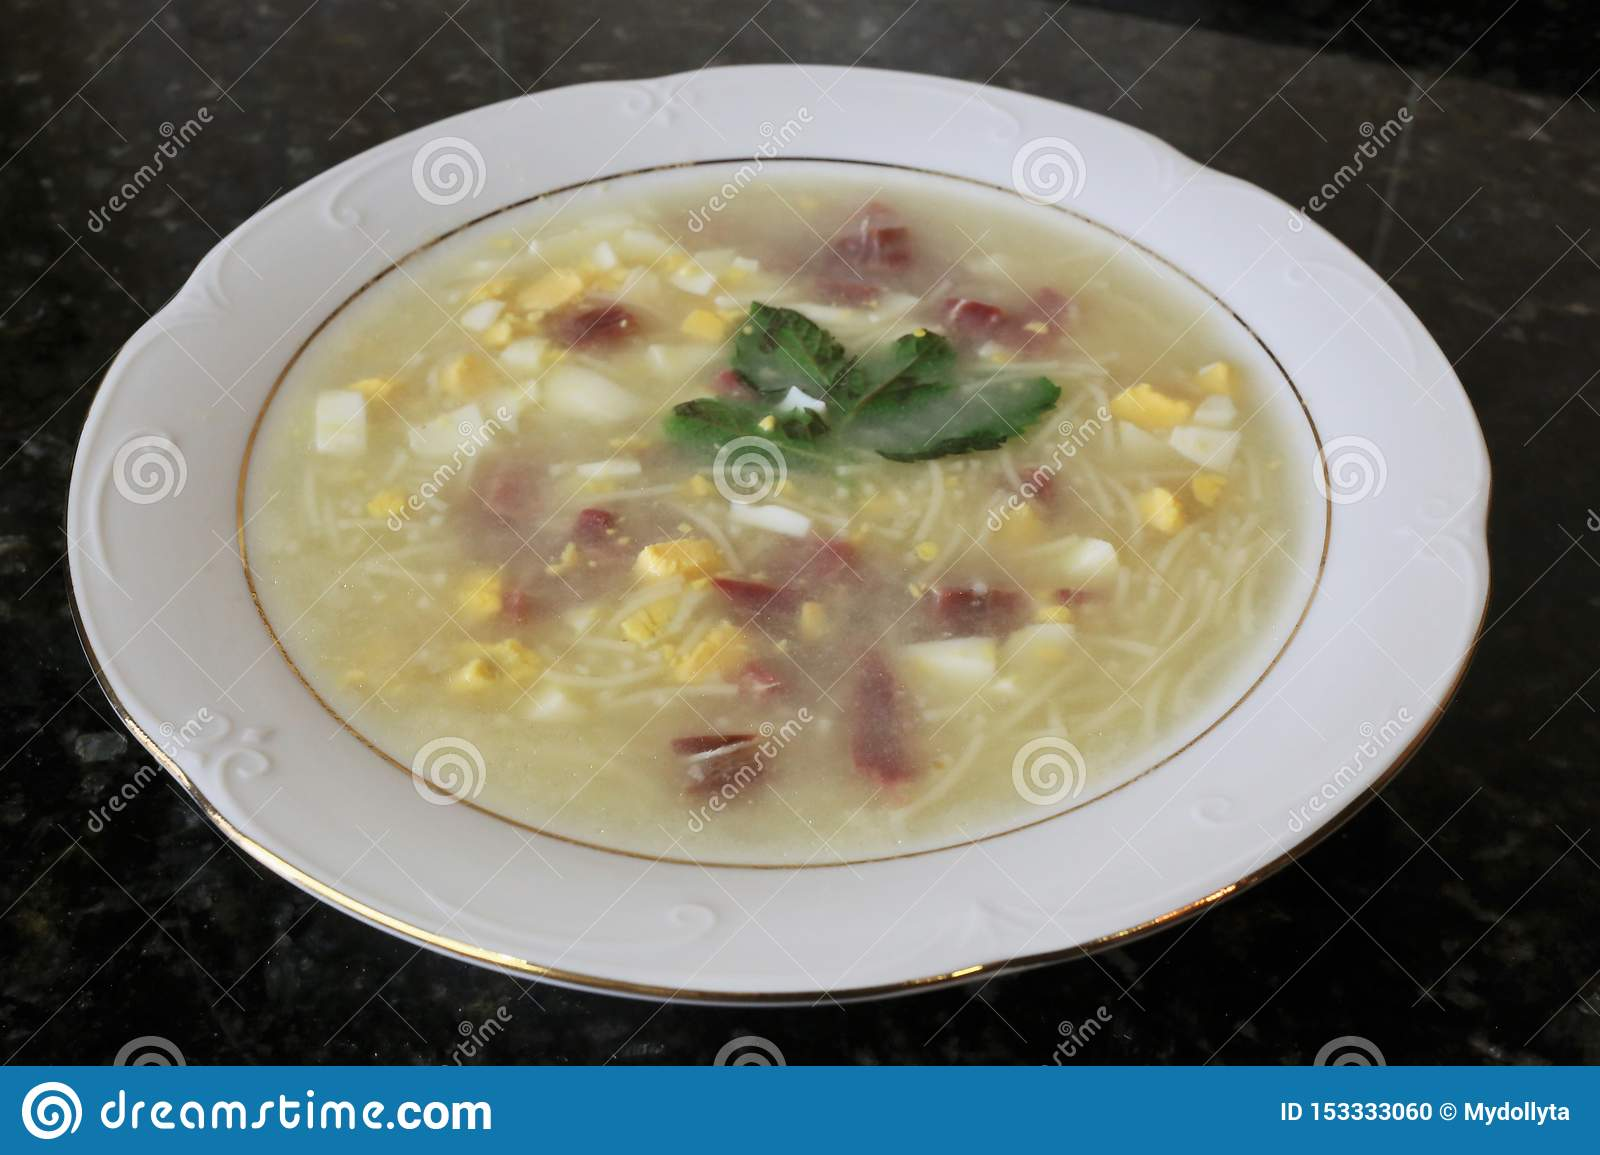 The soup with egg and ham noodles typical Andalusian and Spanish